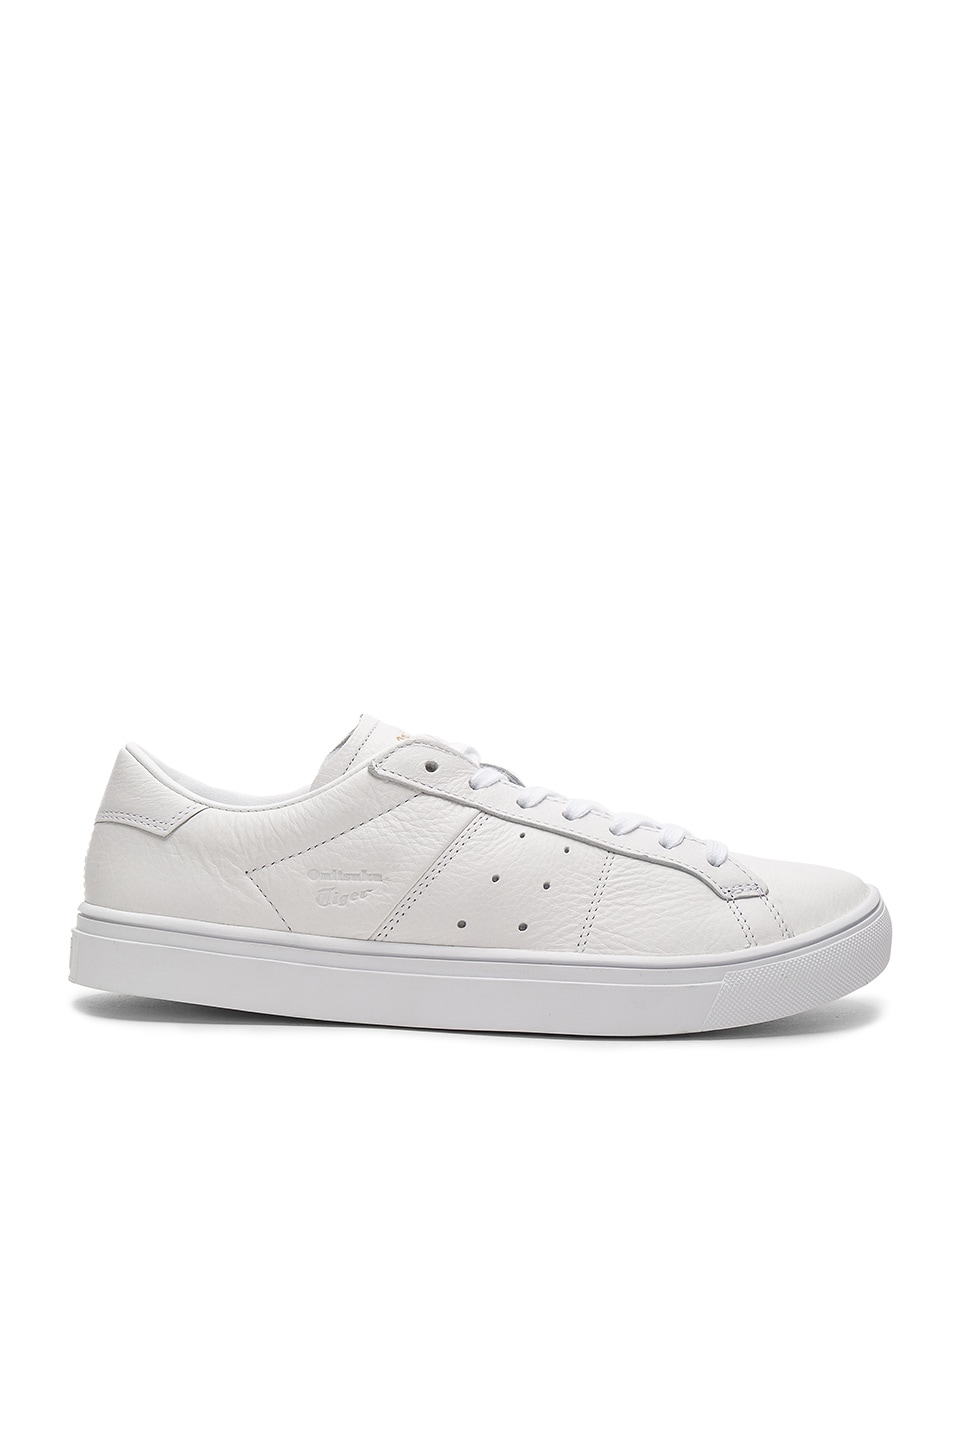 new product 520d9 df864 Onitsuka Tiger Platinum Lawnship 2.0 in White & White | REVOLVE